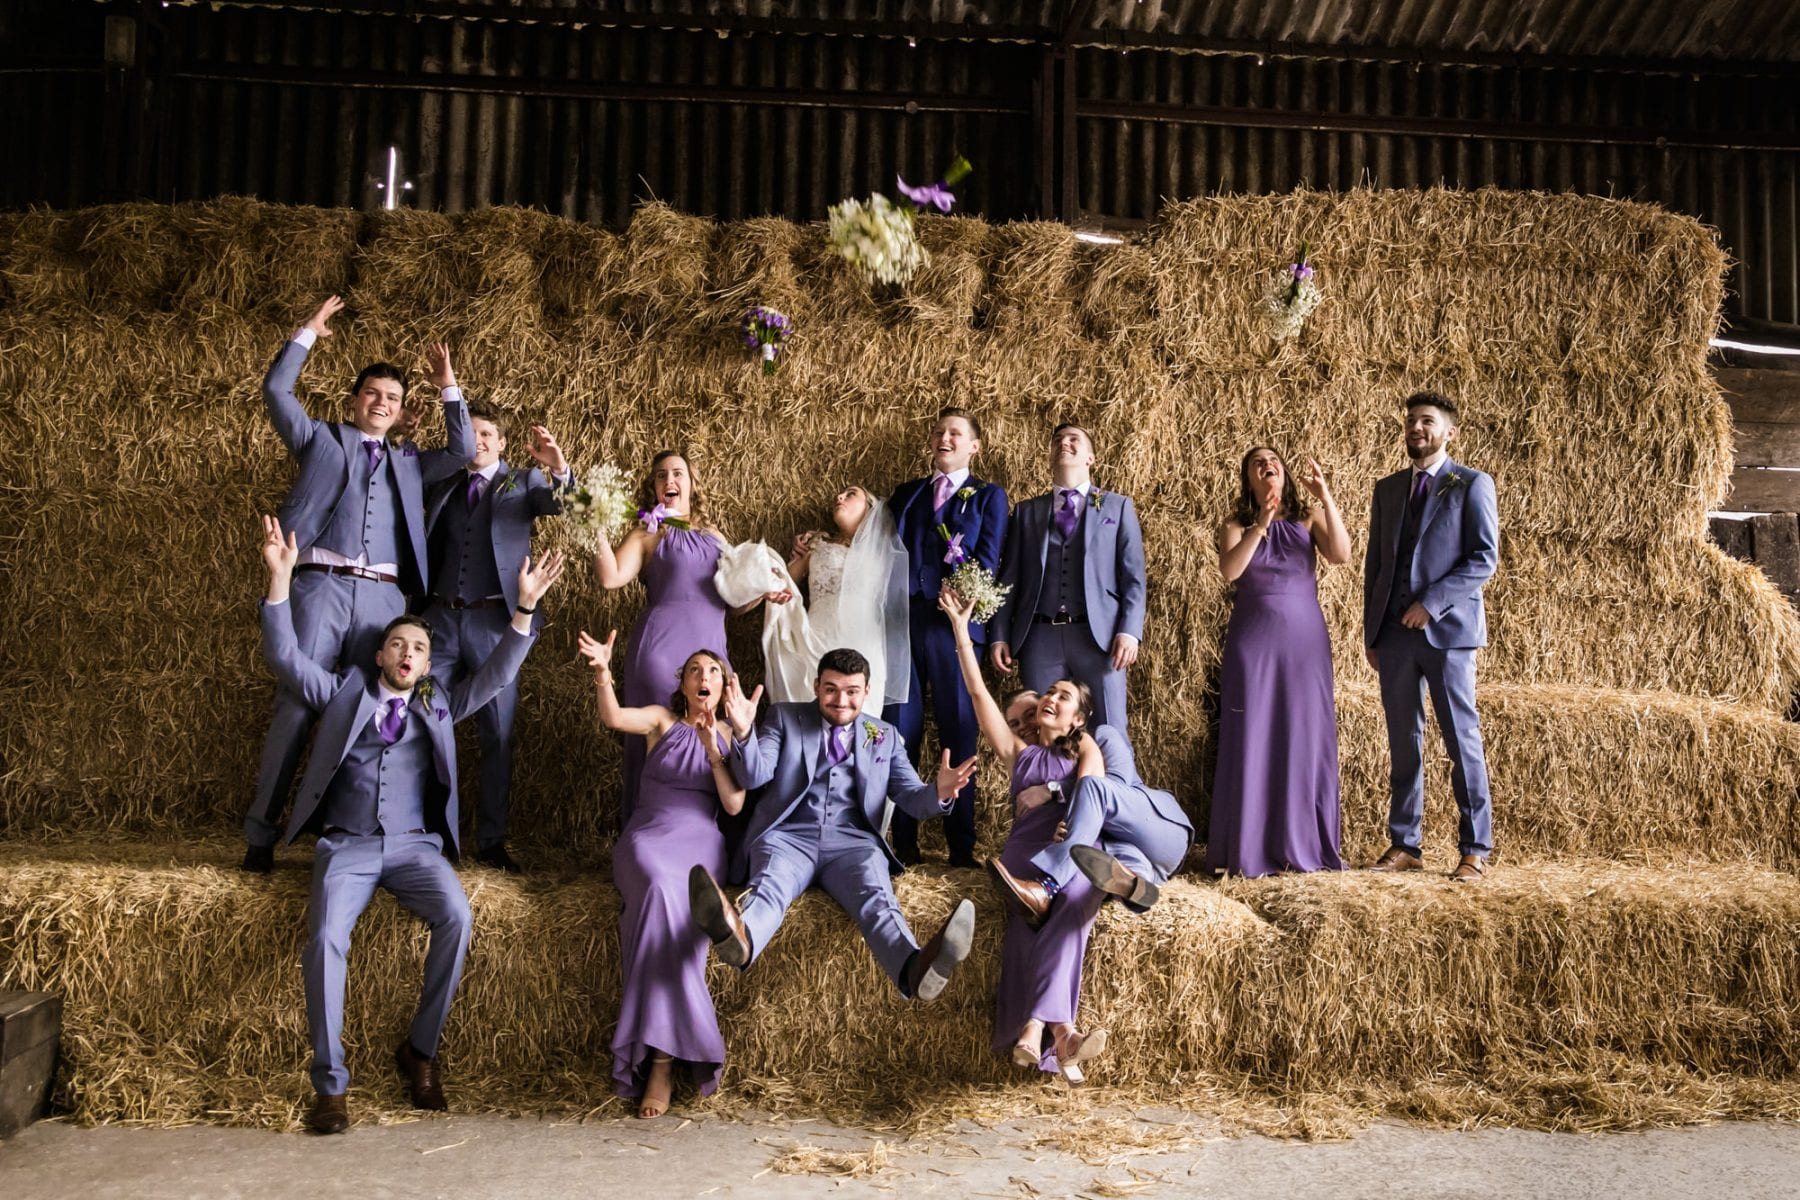 Owen House Wedding Barn Photographer